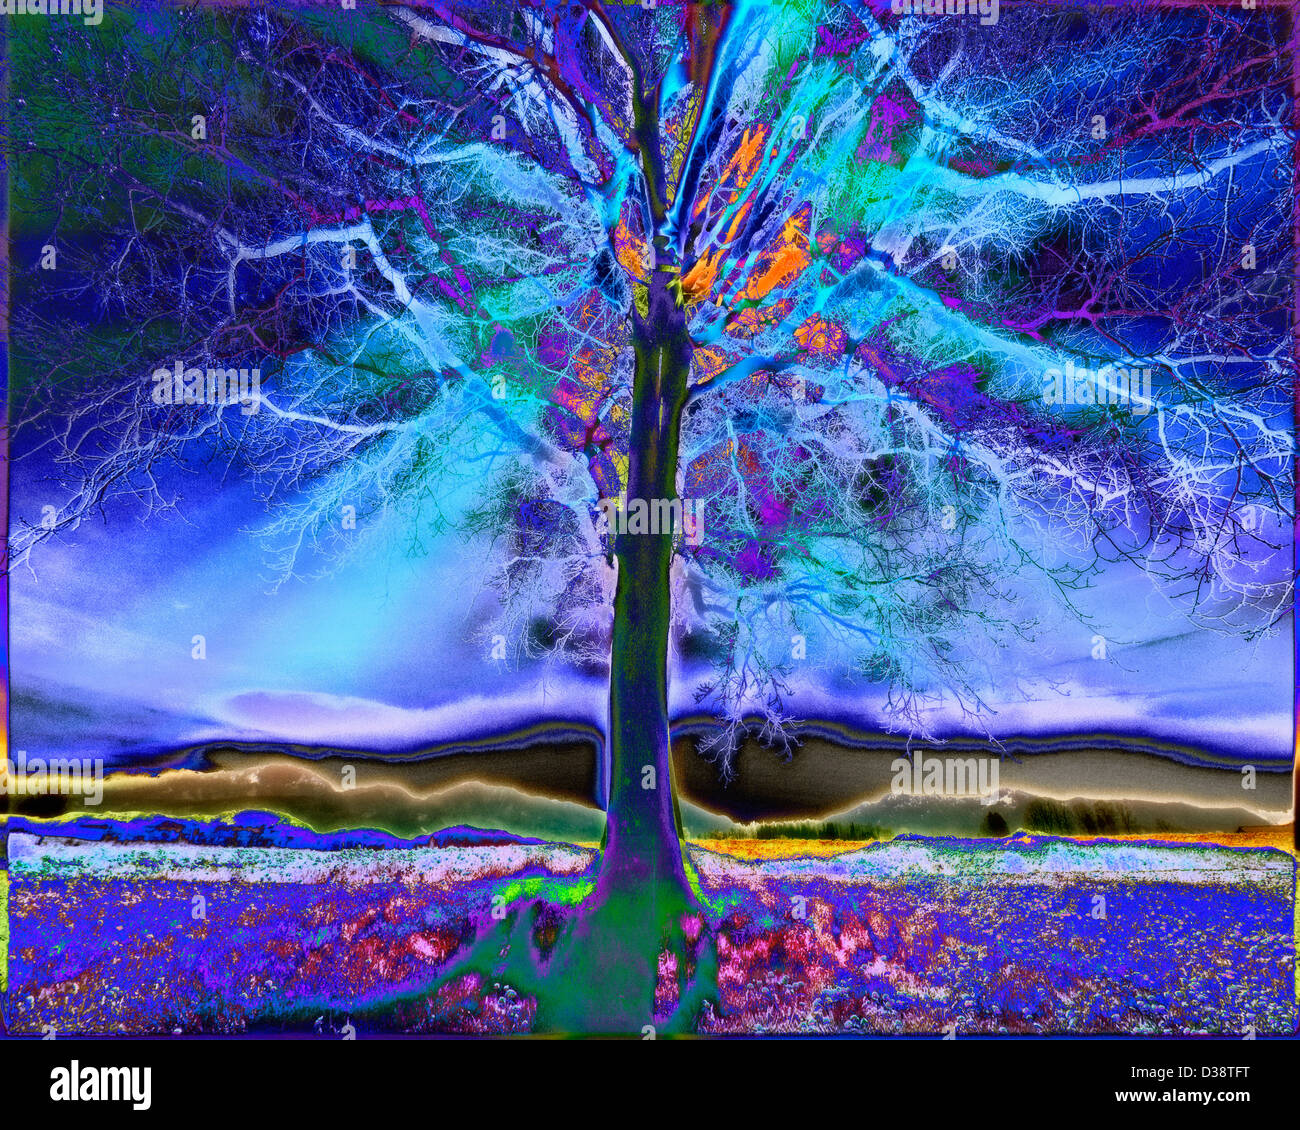 DIGITAL ART: Lone Tree - Stock Image